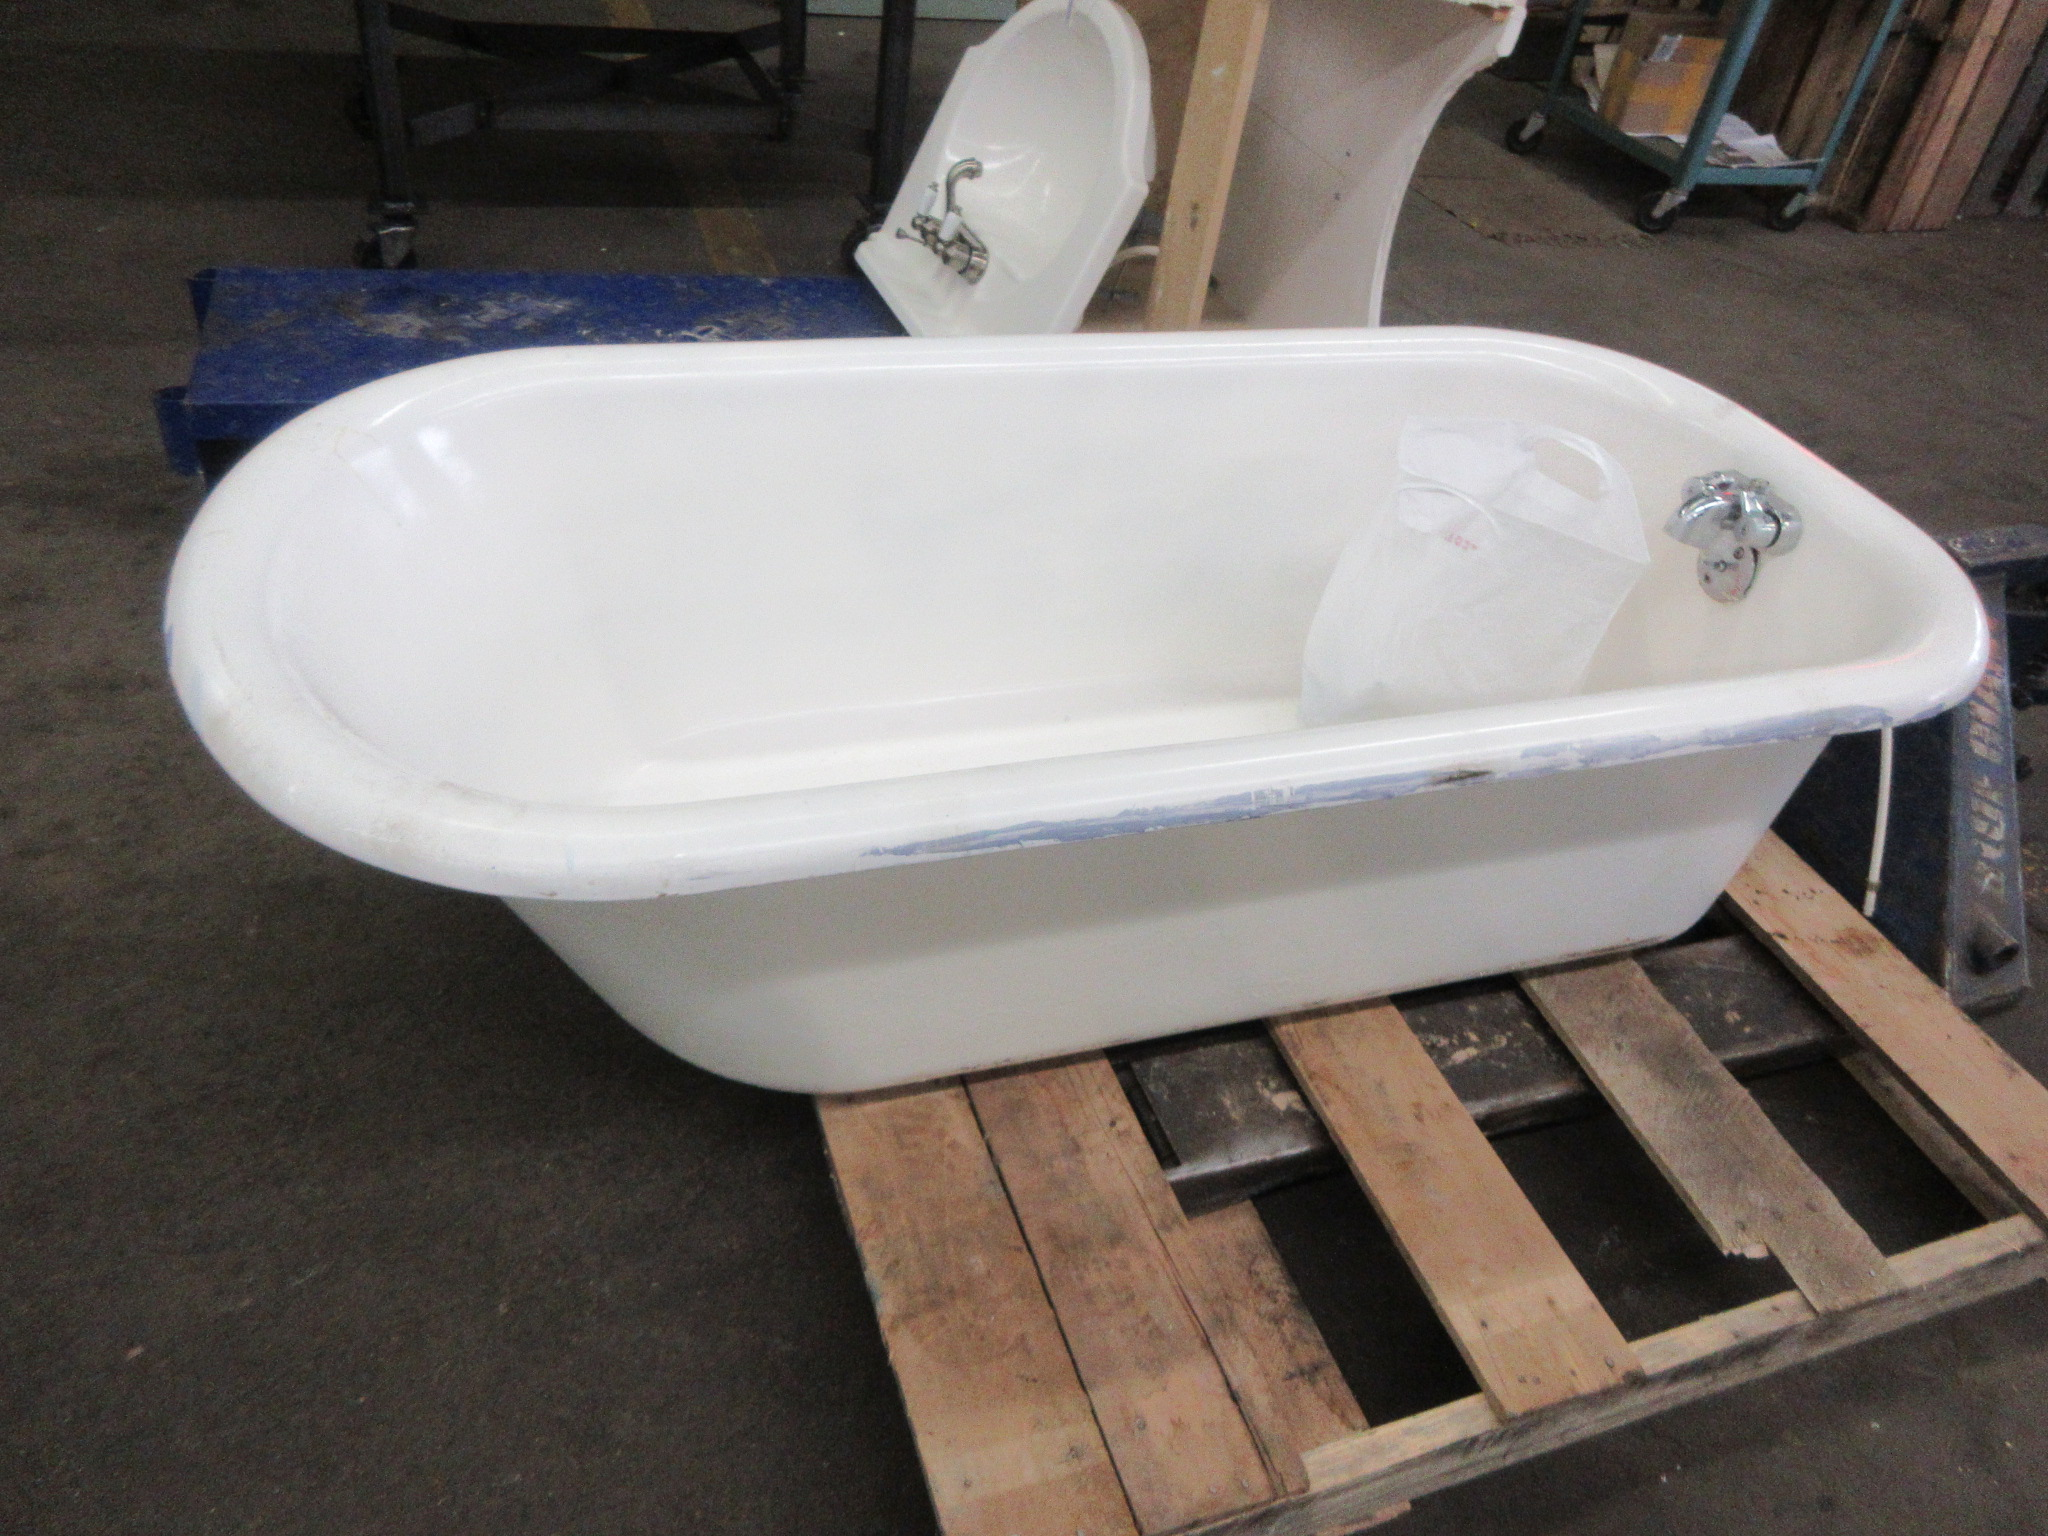 Claw foot tub with legs